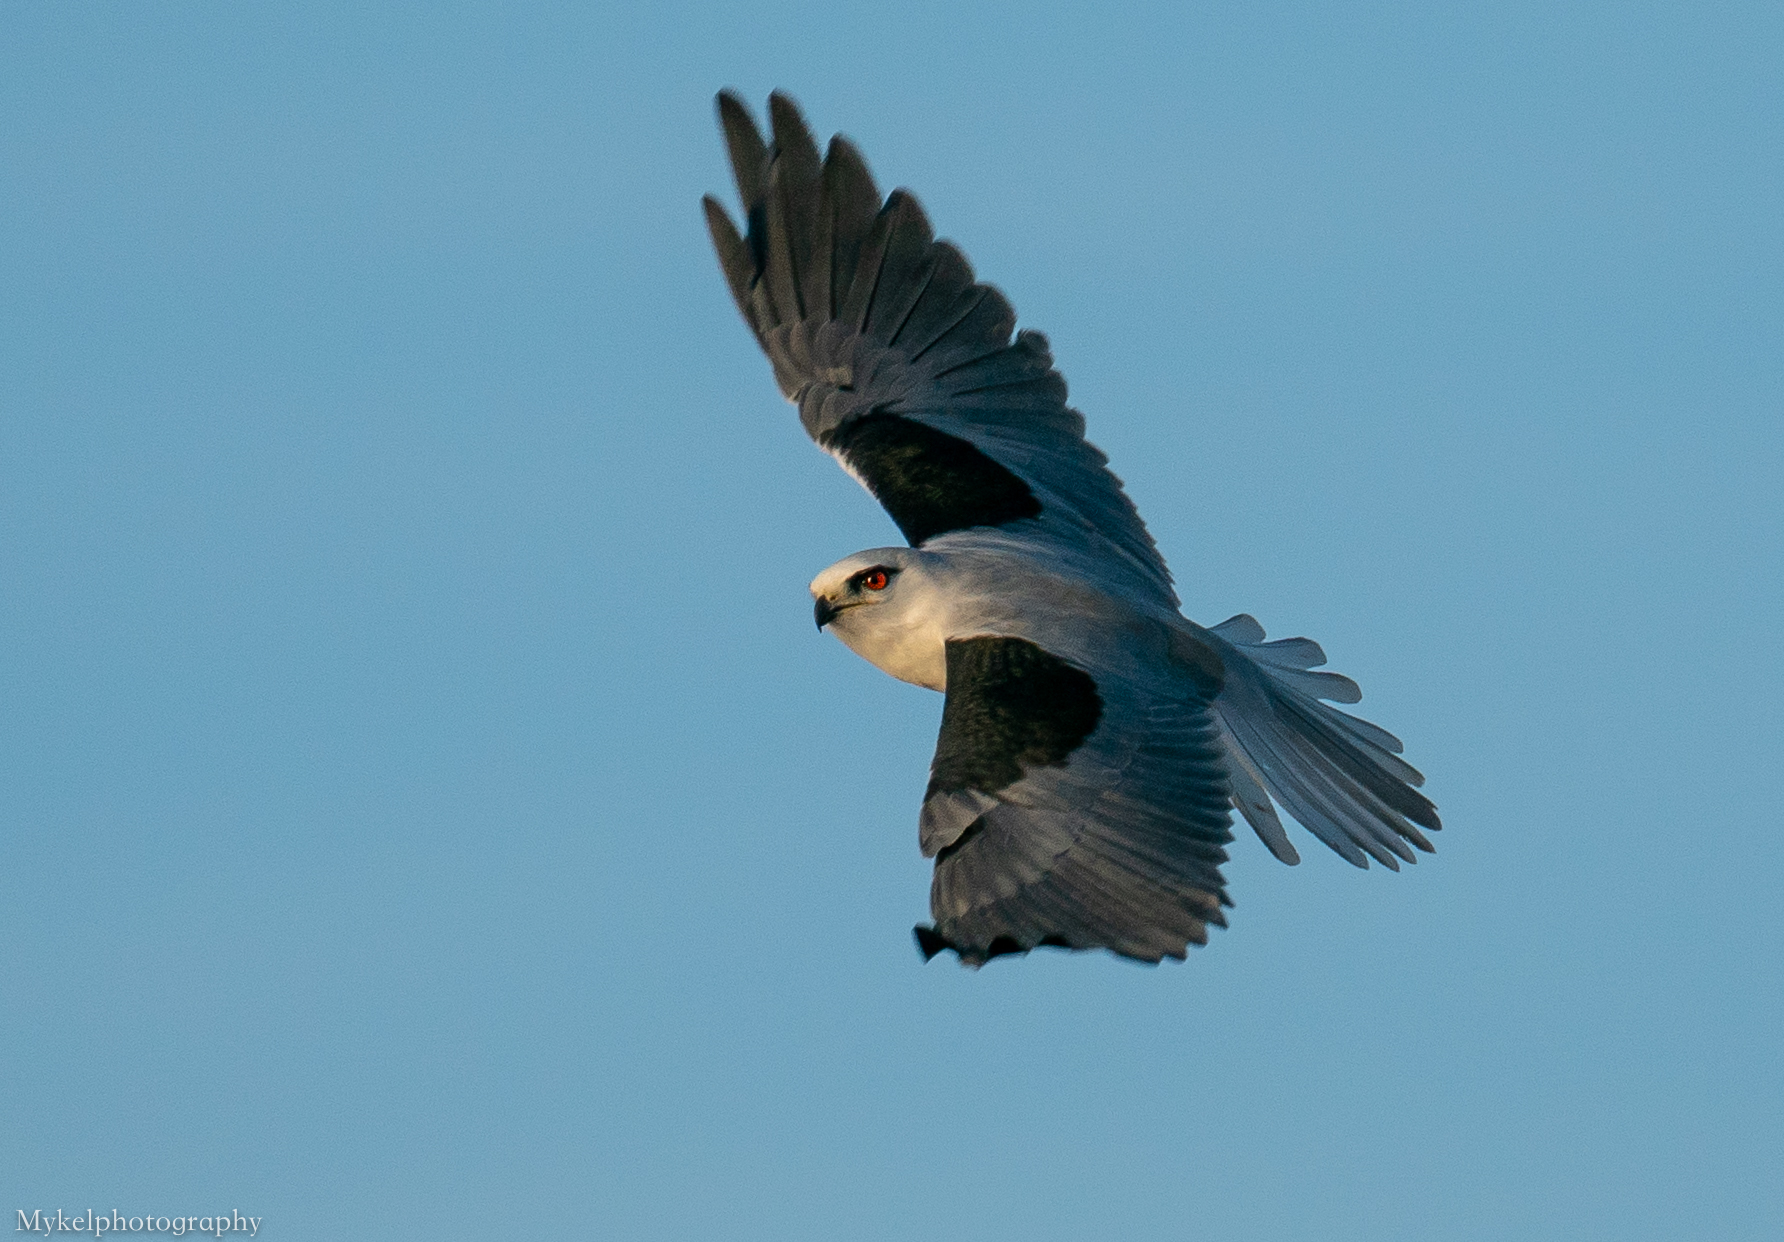 Black-shouldered Kite, Elanus axillaris Accipitridae, you can see how they get their name in this one